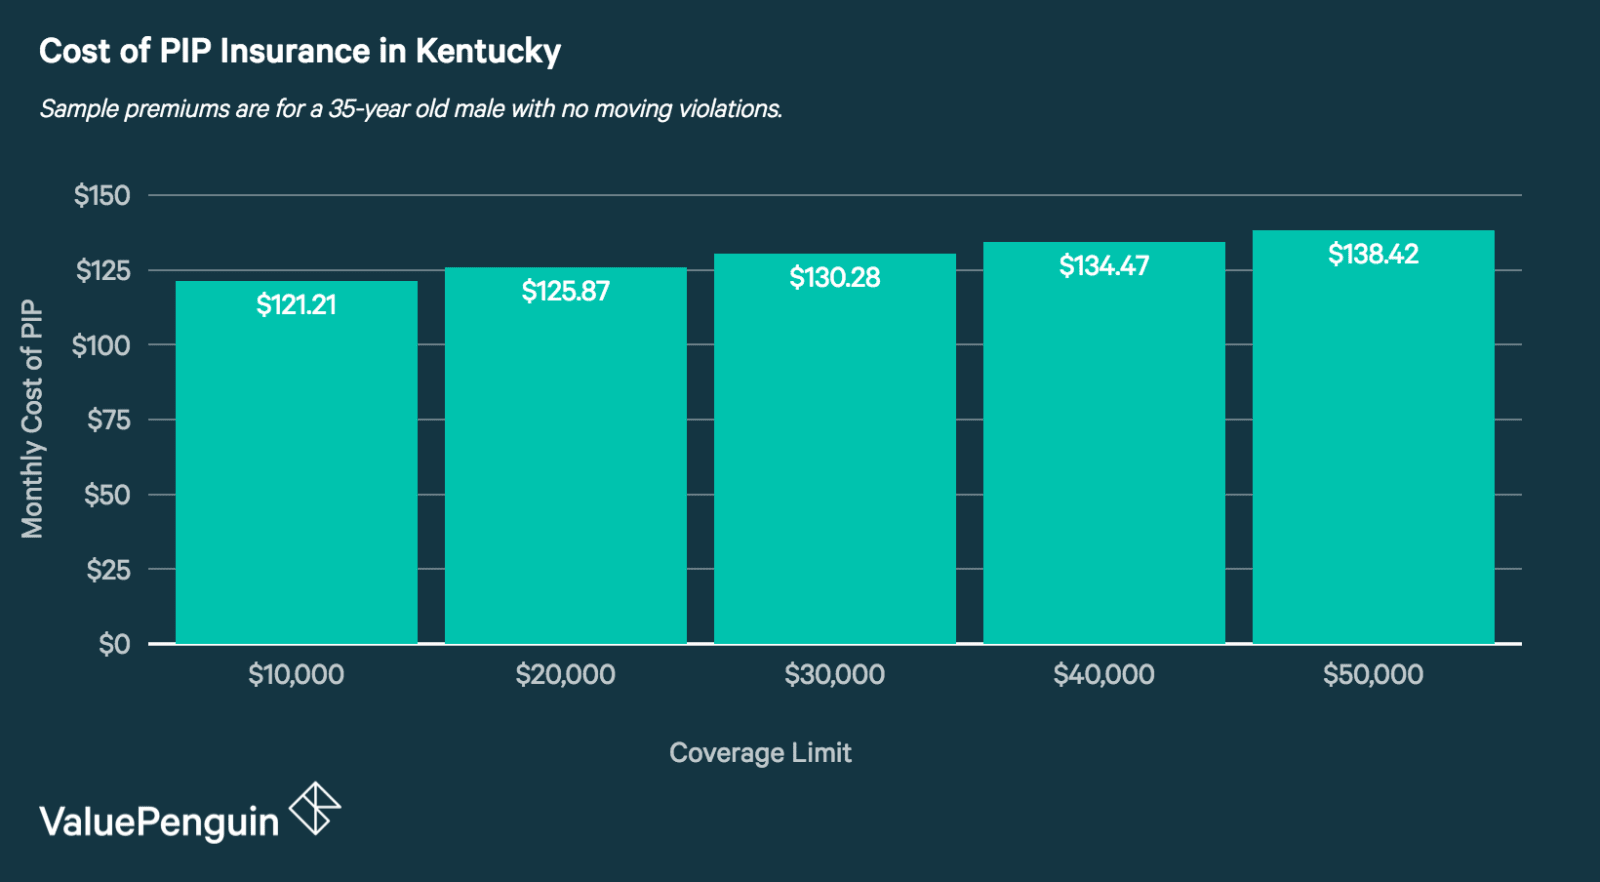 Cost of PIP insurance in Kentucky by coverage limit